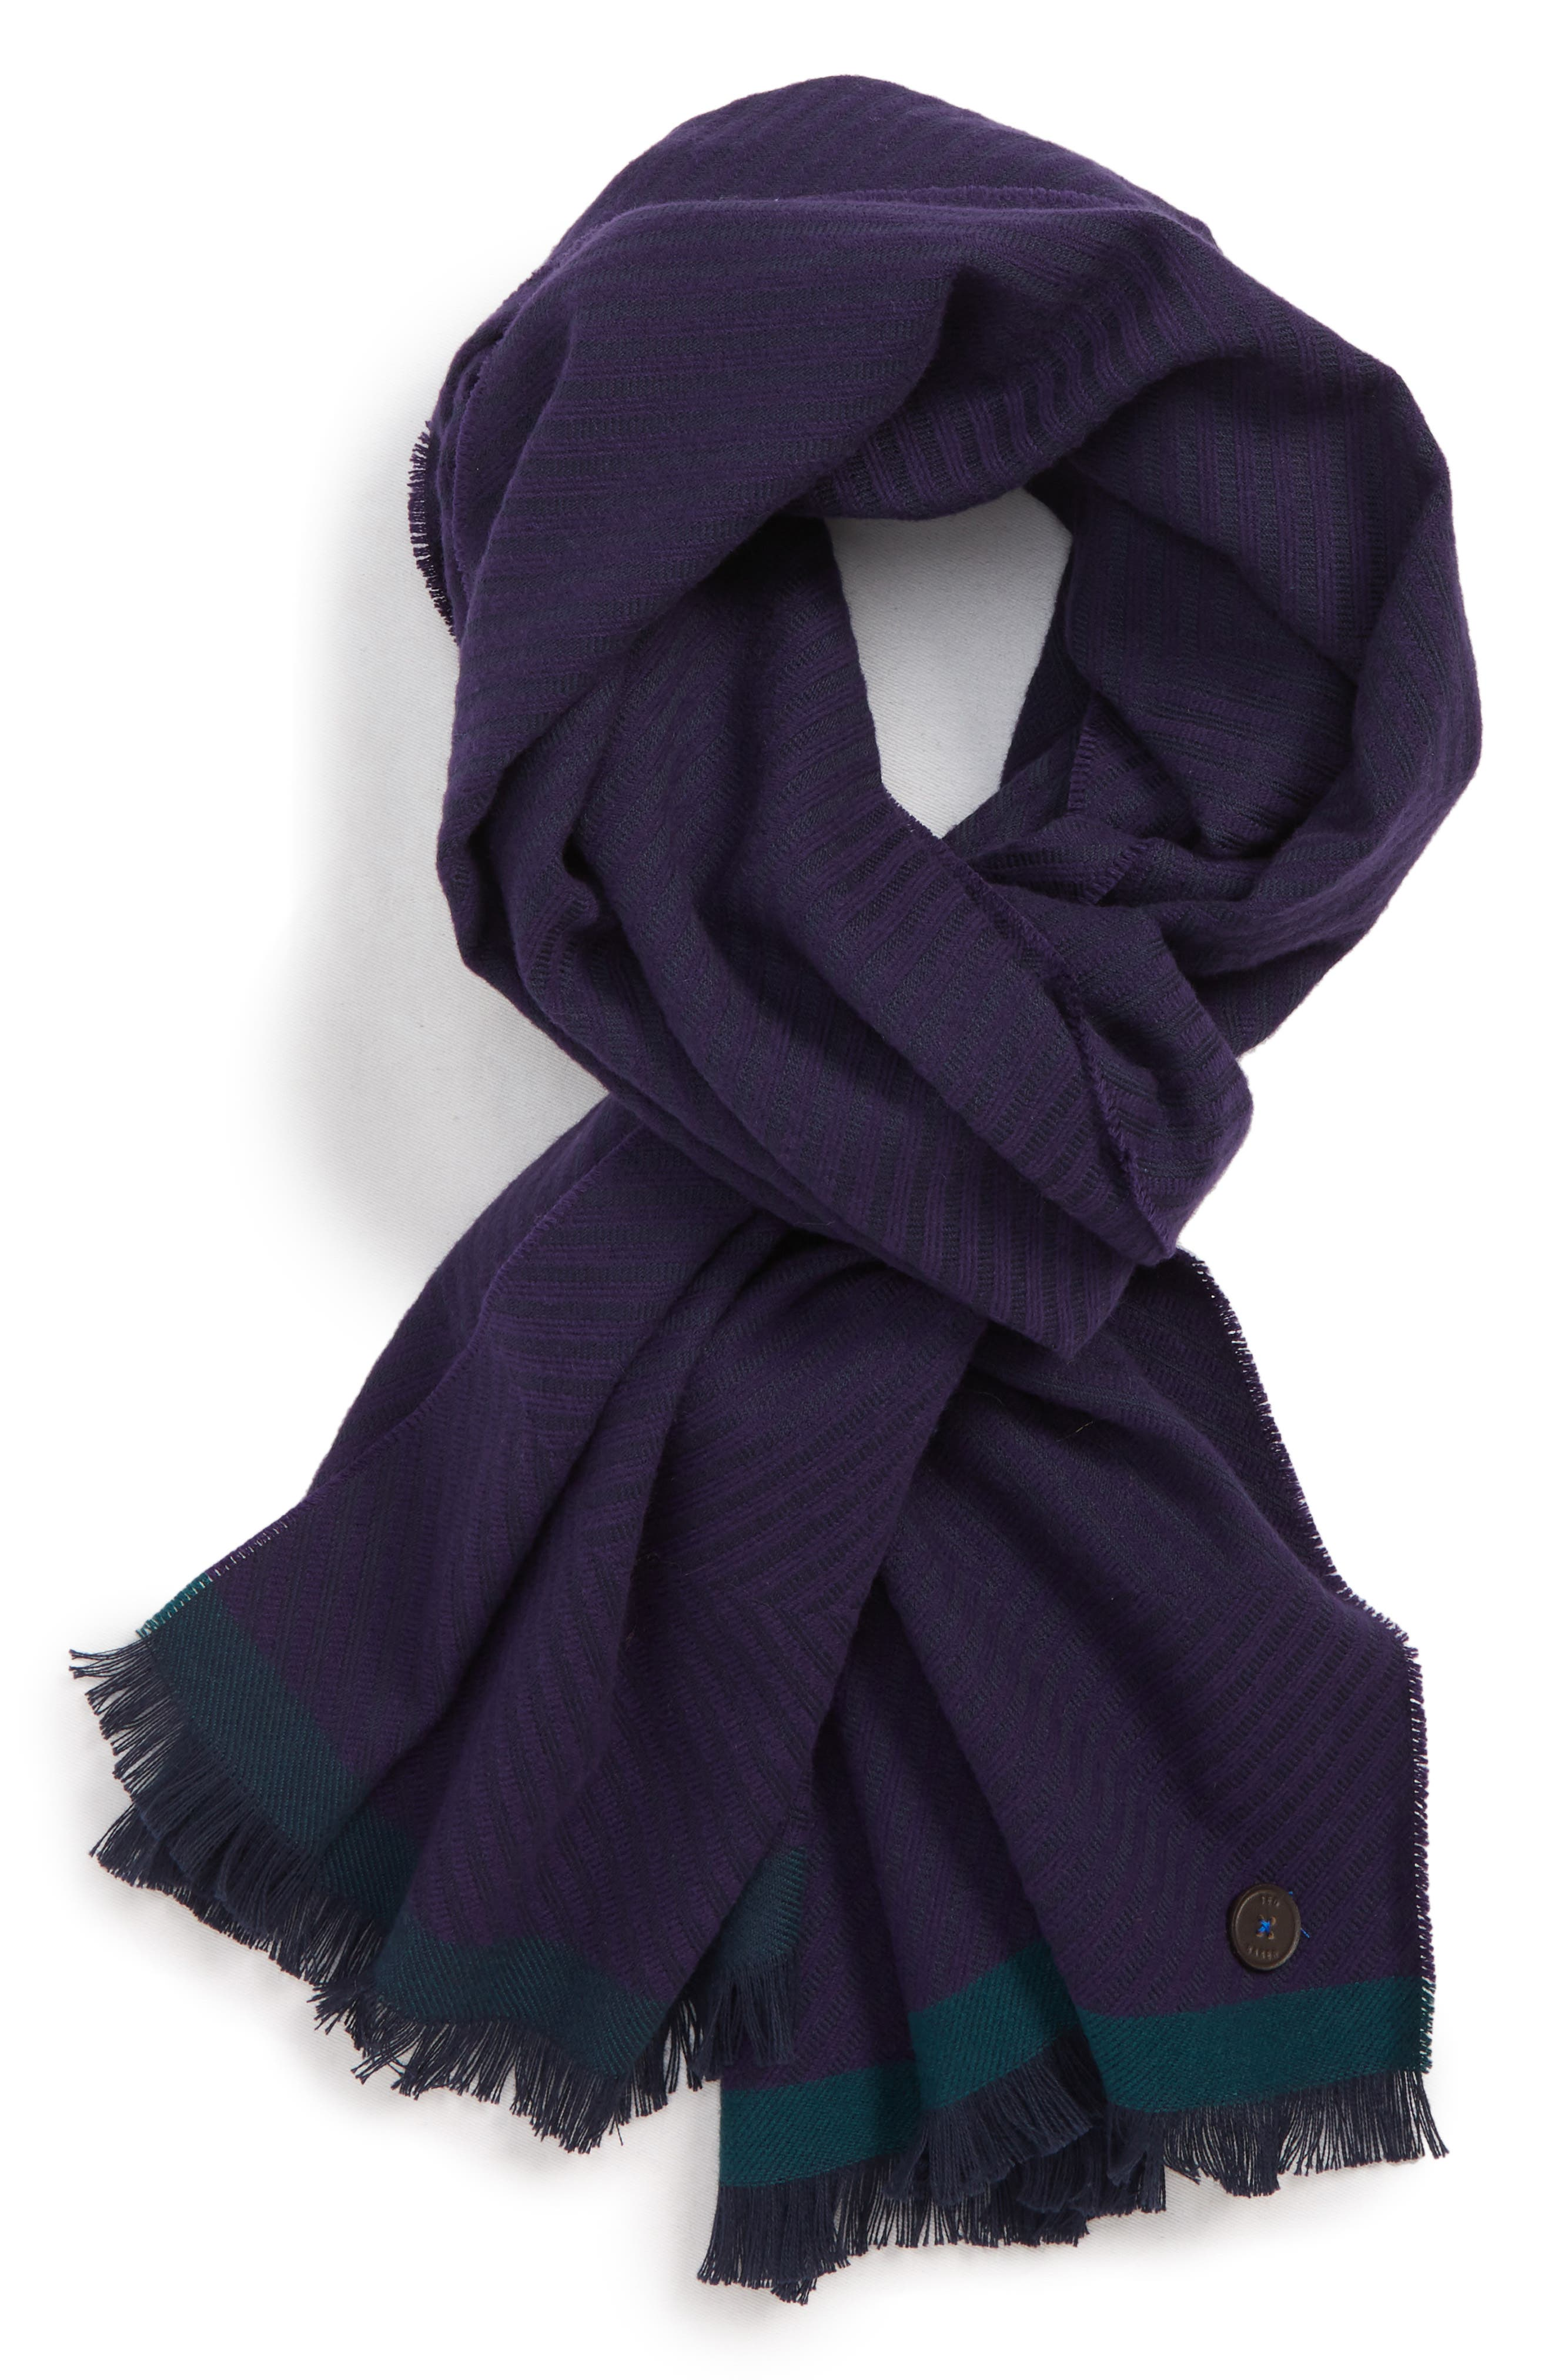 TED BAKER LONDON,                             Cotton Twill Scarf,                             Main thumbnail 1, color,                             501